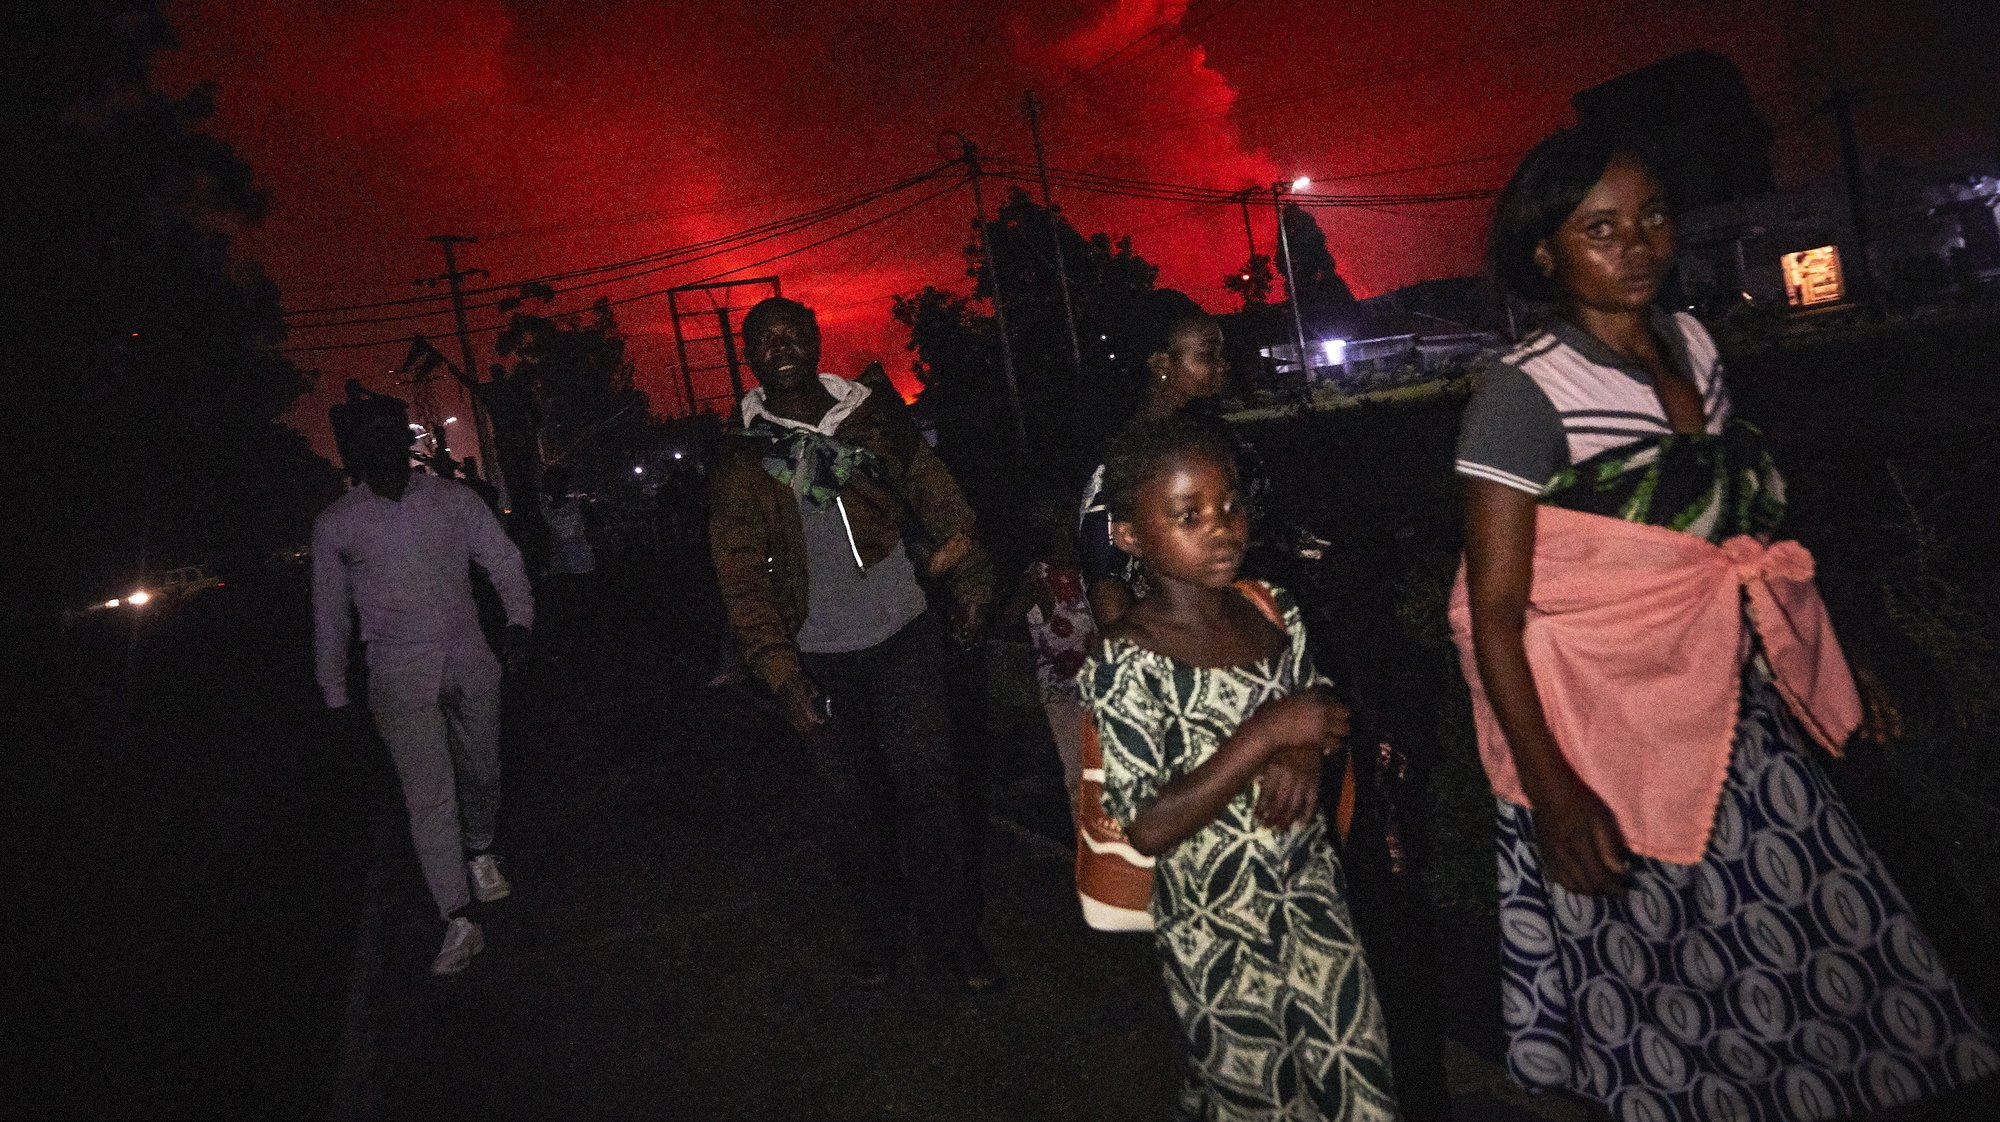 epaselect epa09221145 Congolese residents of Goma flee from Mount Nyiragongo volcano as it erupts over Goma, Democratic Republic of the Congo, 22 May 2021. One of the planets most active volcanoes Mount Nyiragongo in eastern Democratic Republic of Congo erupted causing evacuations in some parts of Goma. Initial reports from scientists predict the city is not in danger from the lava.  EPA/HUGH KINSELLA CUNNINGHAM